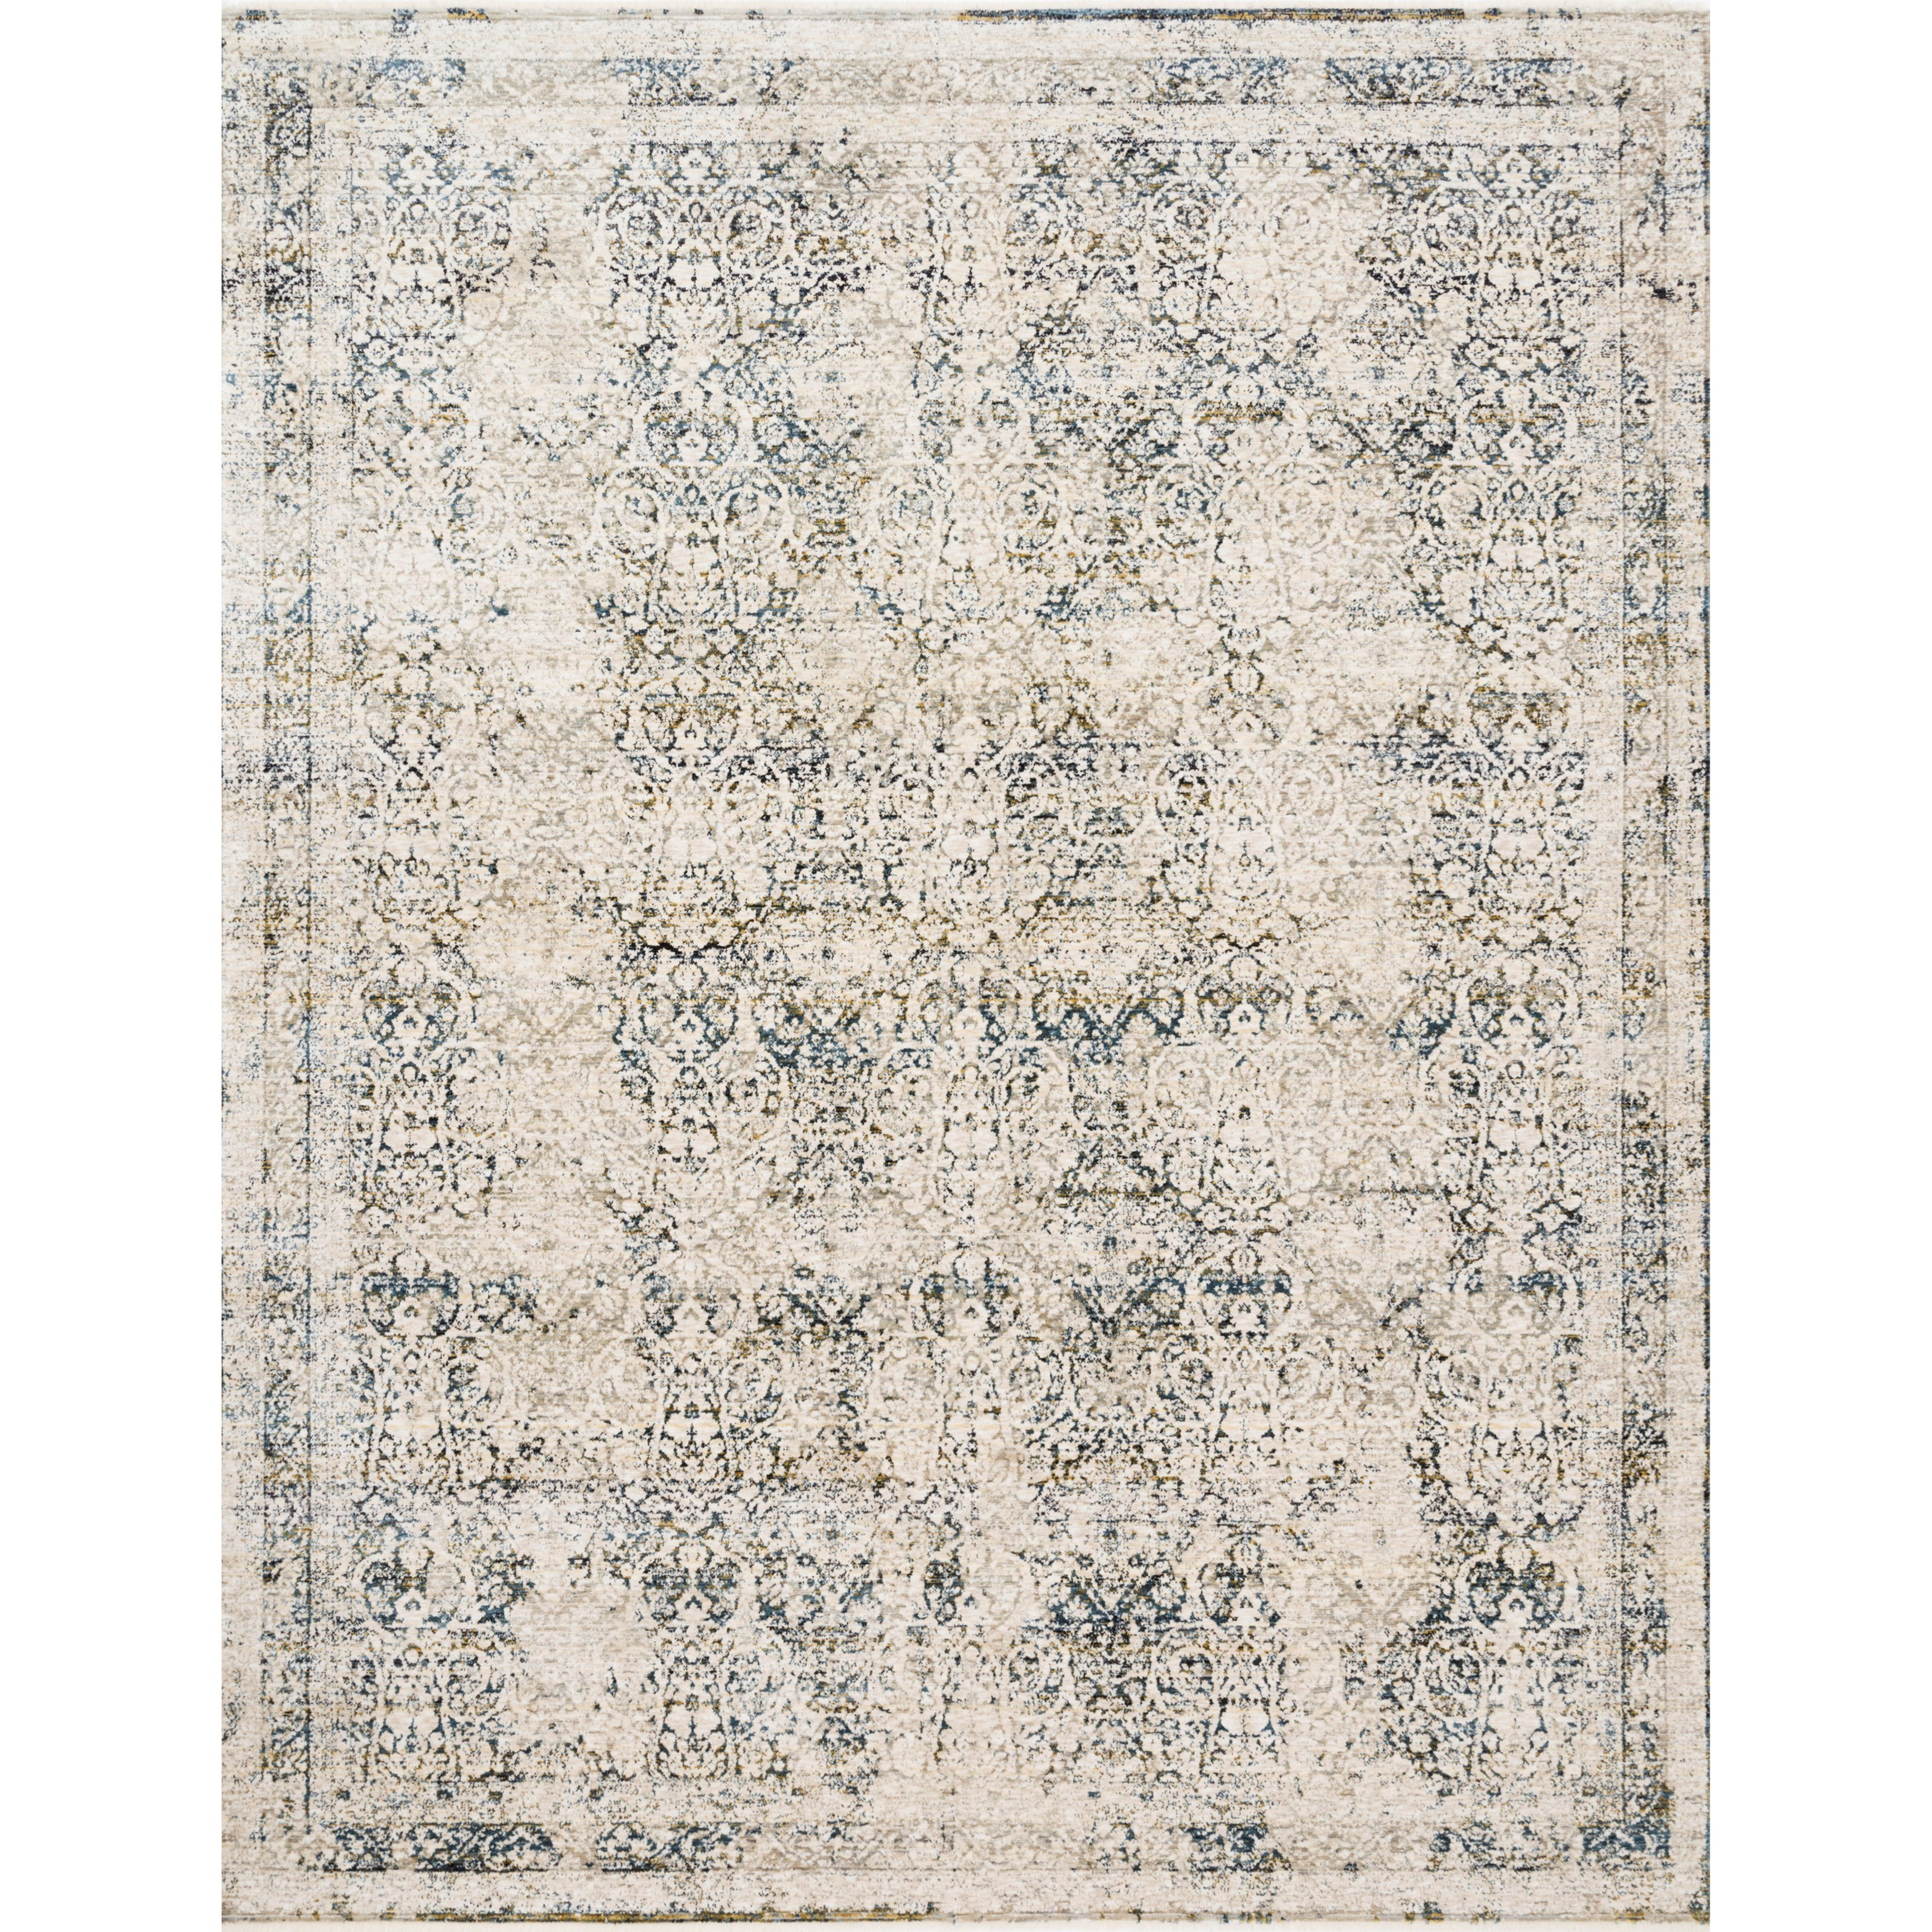 """Theia 6'7"""" x 9'6"""" Natural / Ocean Rug by Loloi Rugs at Virginia Furniture Market"""